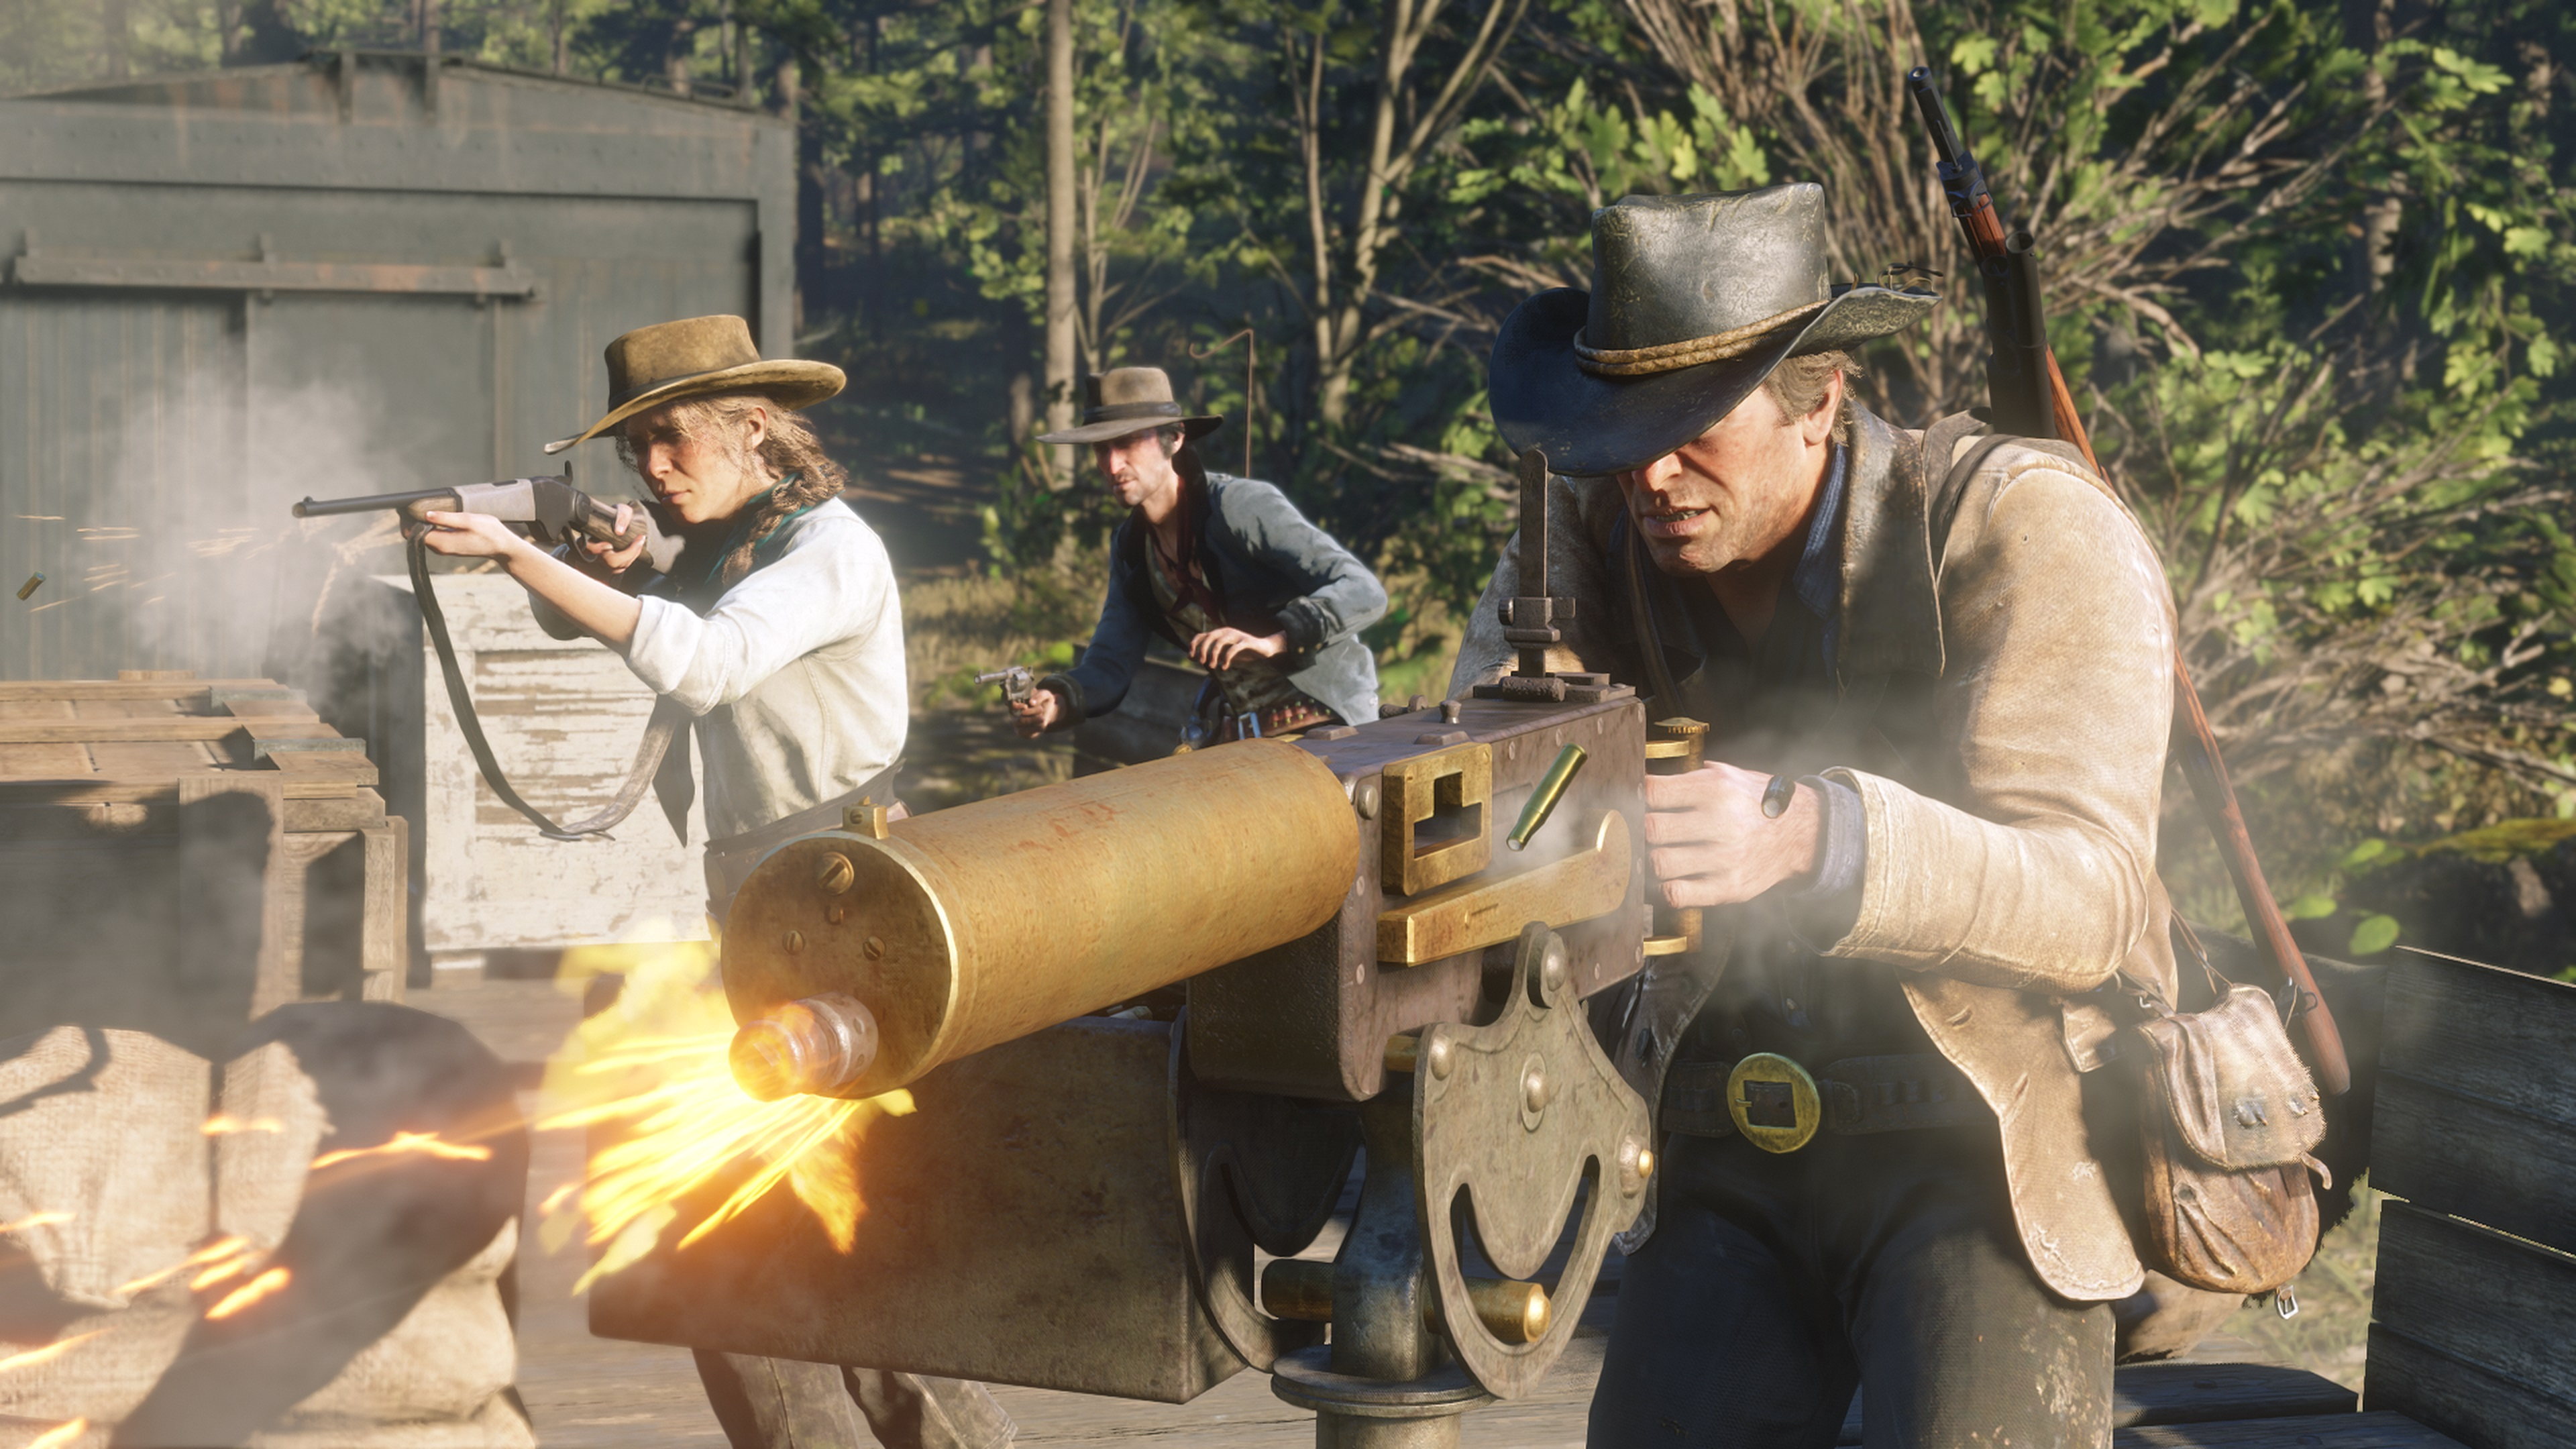 Red Dead Redemption 2 screenshot Morgan tire à la mitrailleuse aidé par ses alliés